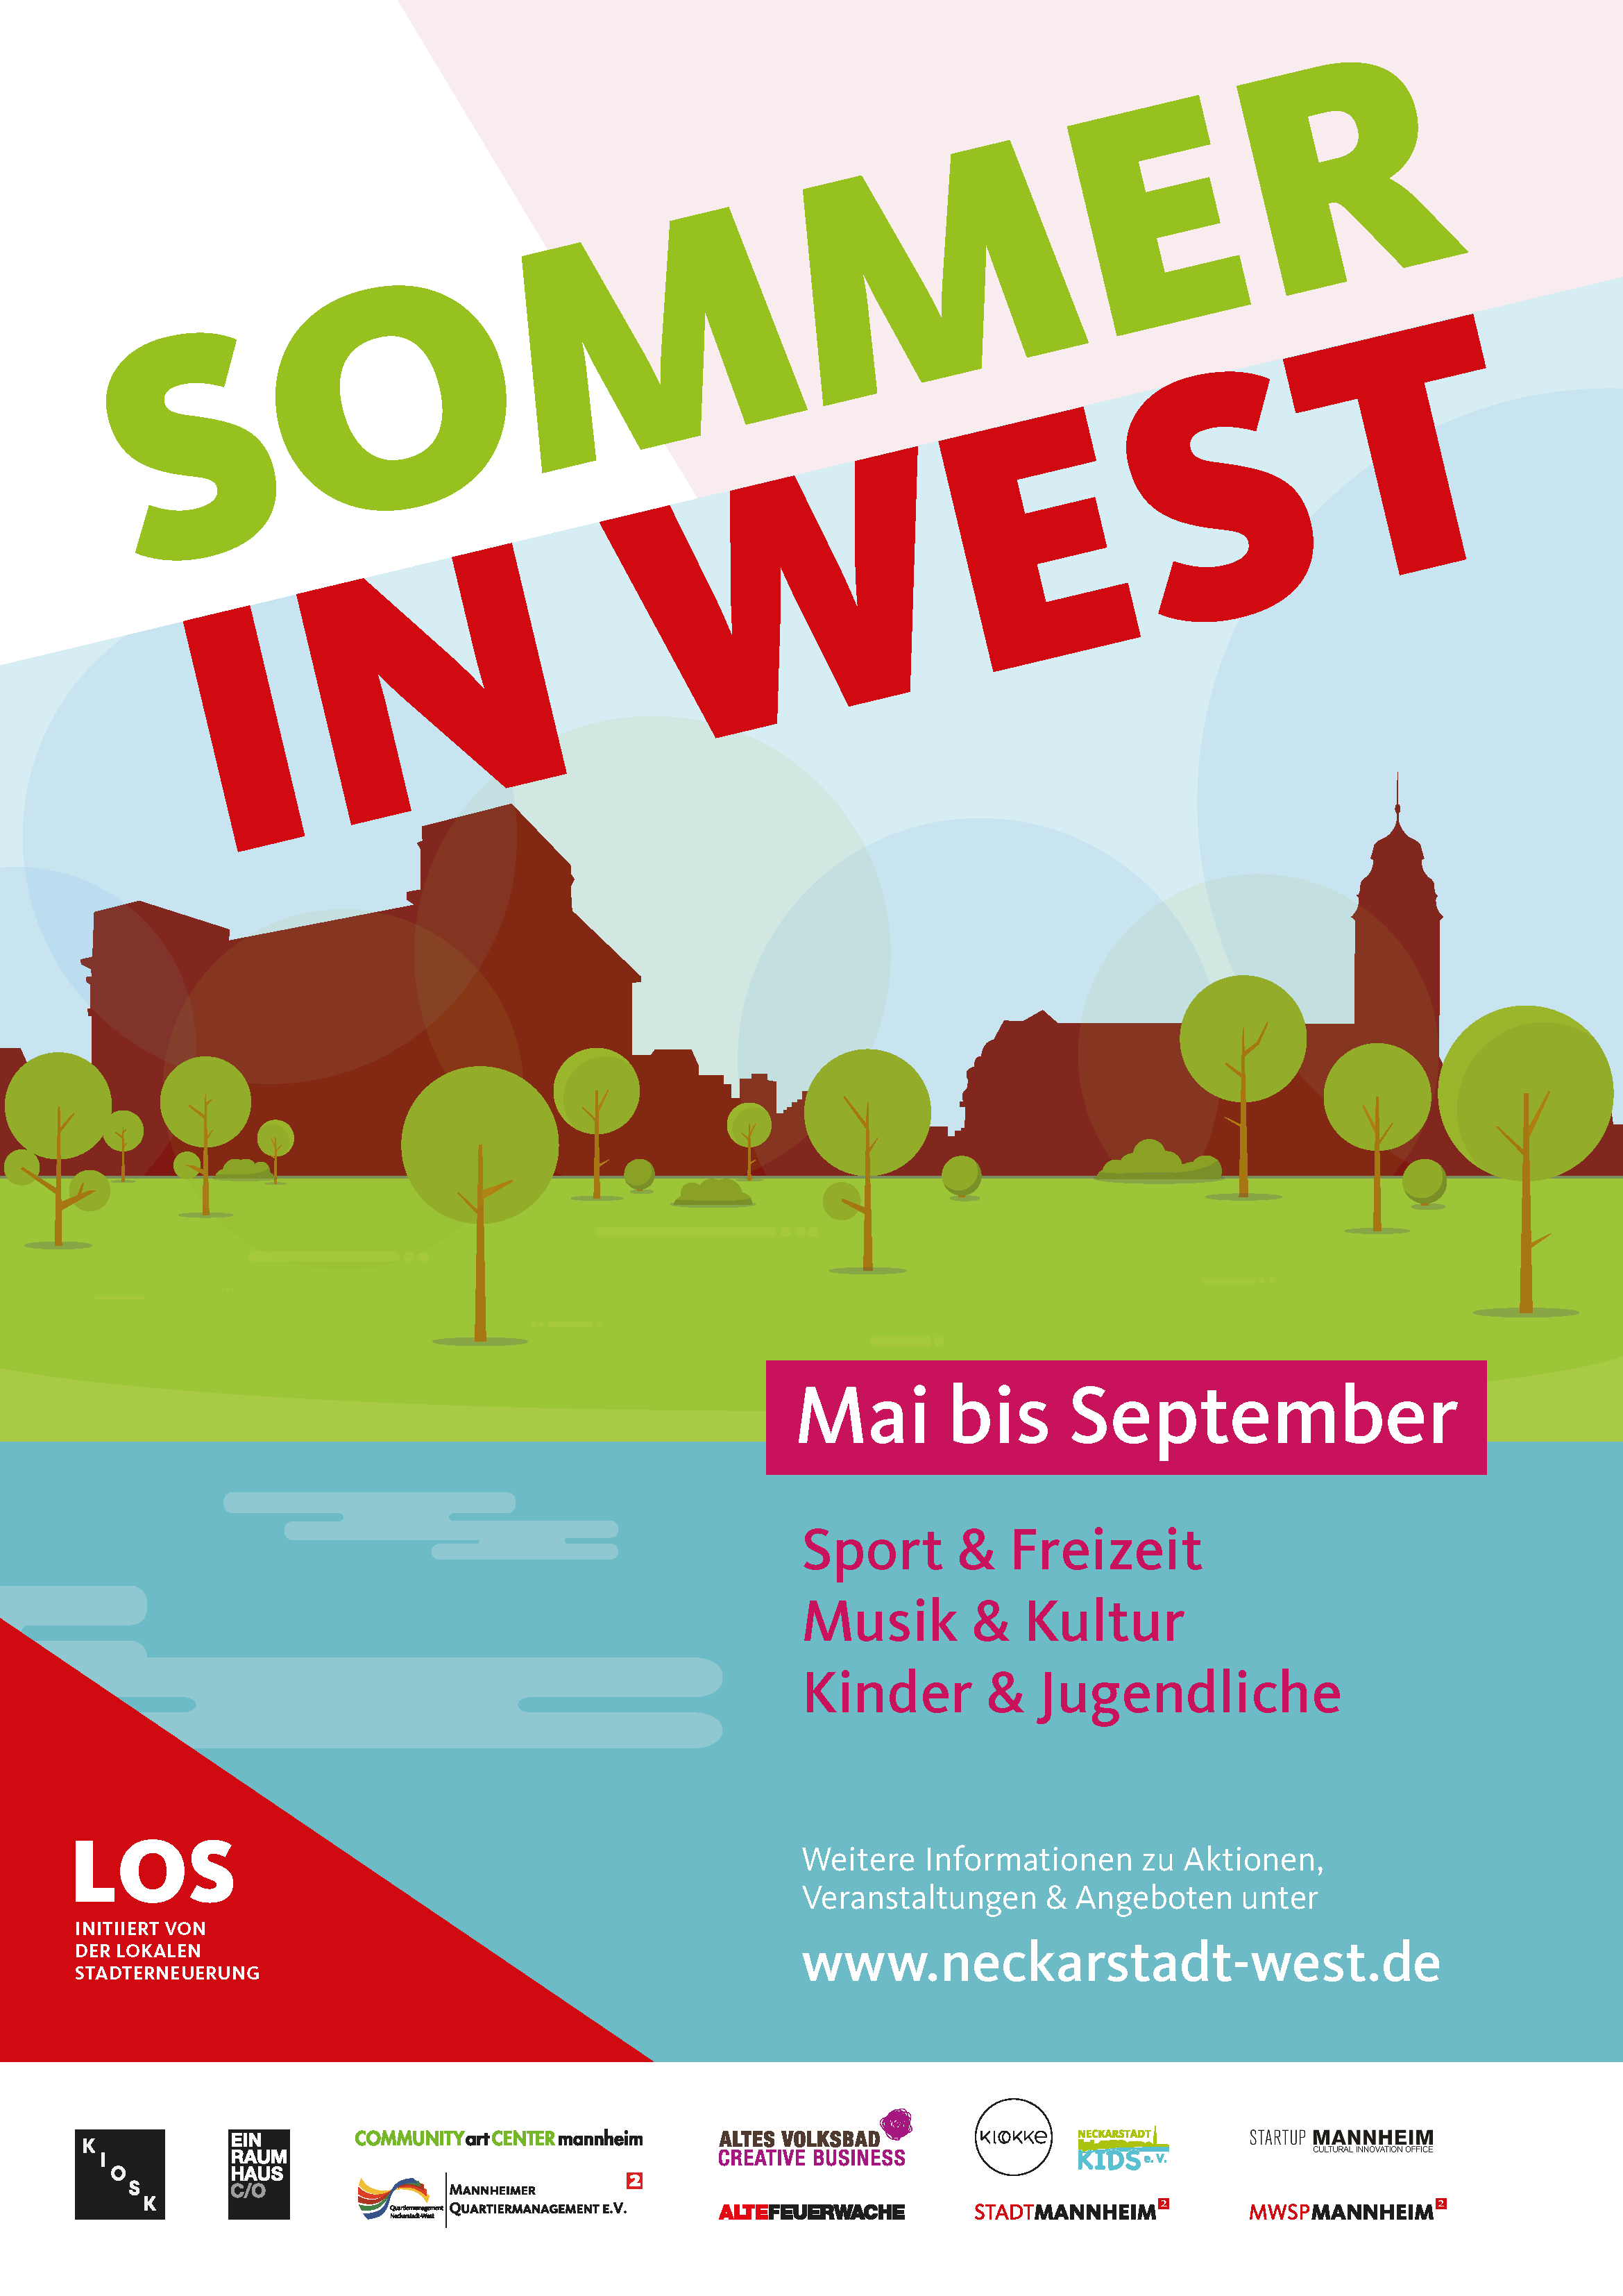 Sommer in West